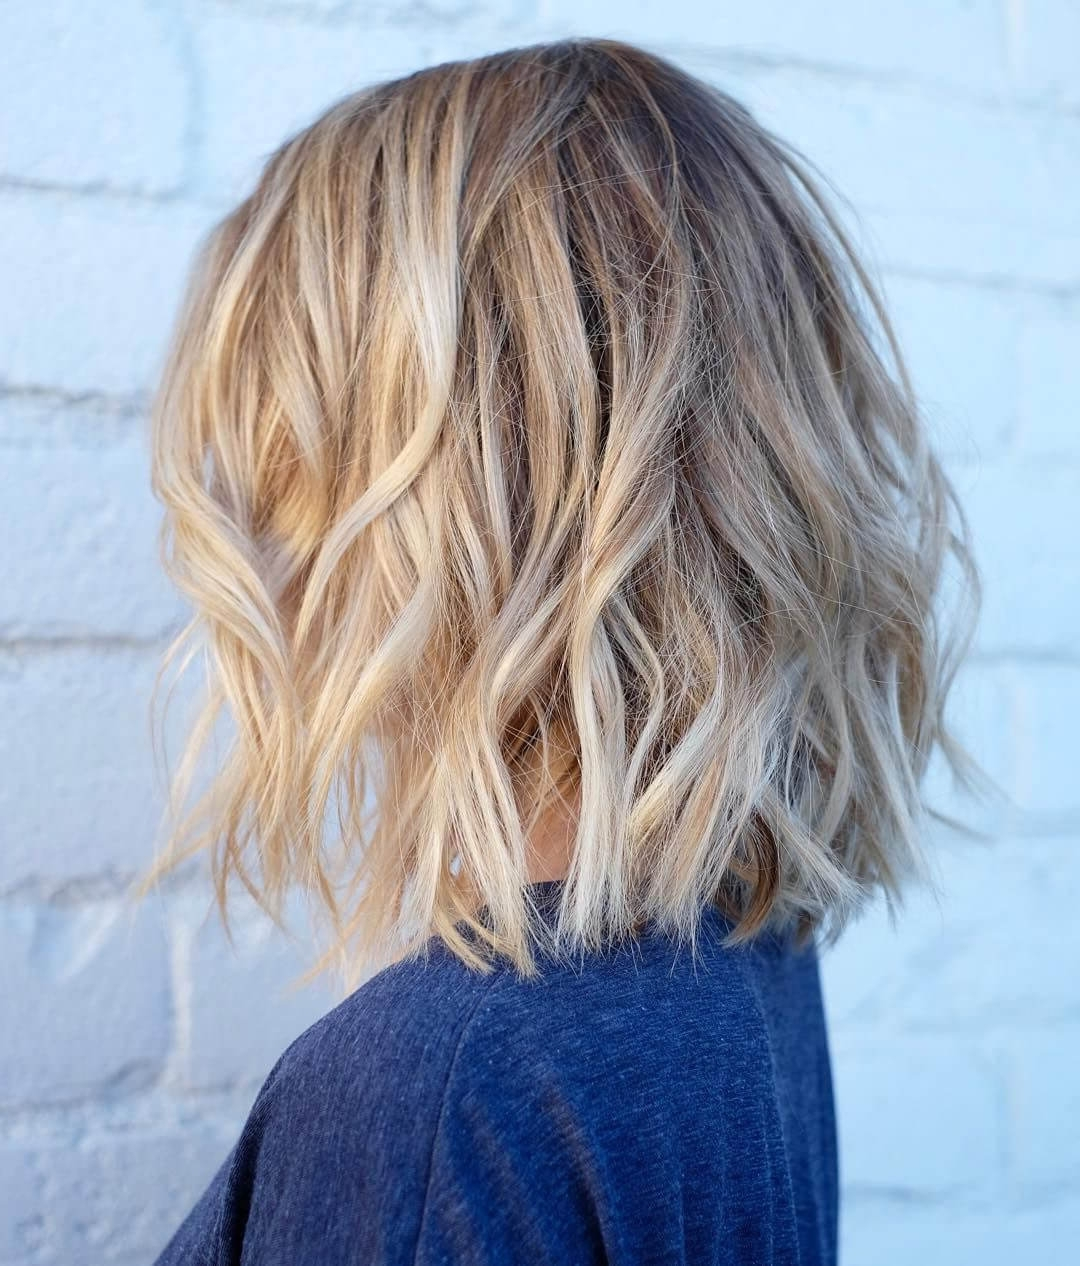 50 Fresh Short Blonde Hair Ideas To Update Your Style In 2018 Inside Popular White Blonde Hairstyles For Brown Base (View 7 of 20)